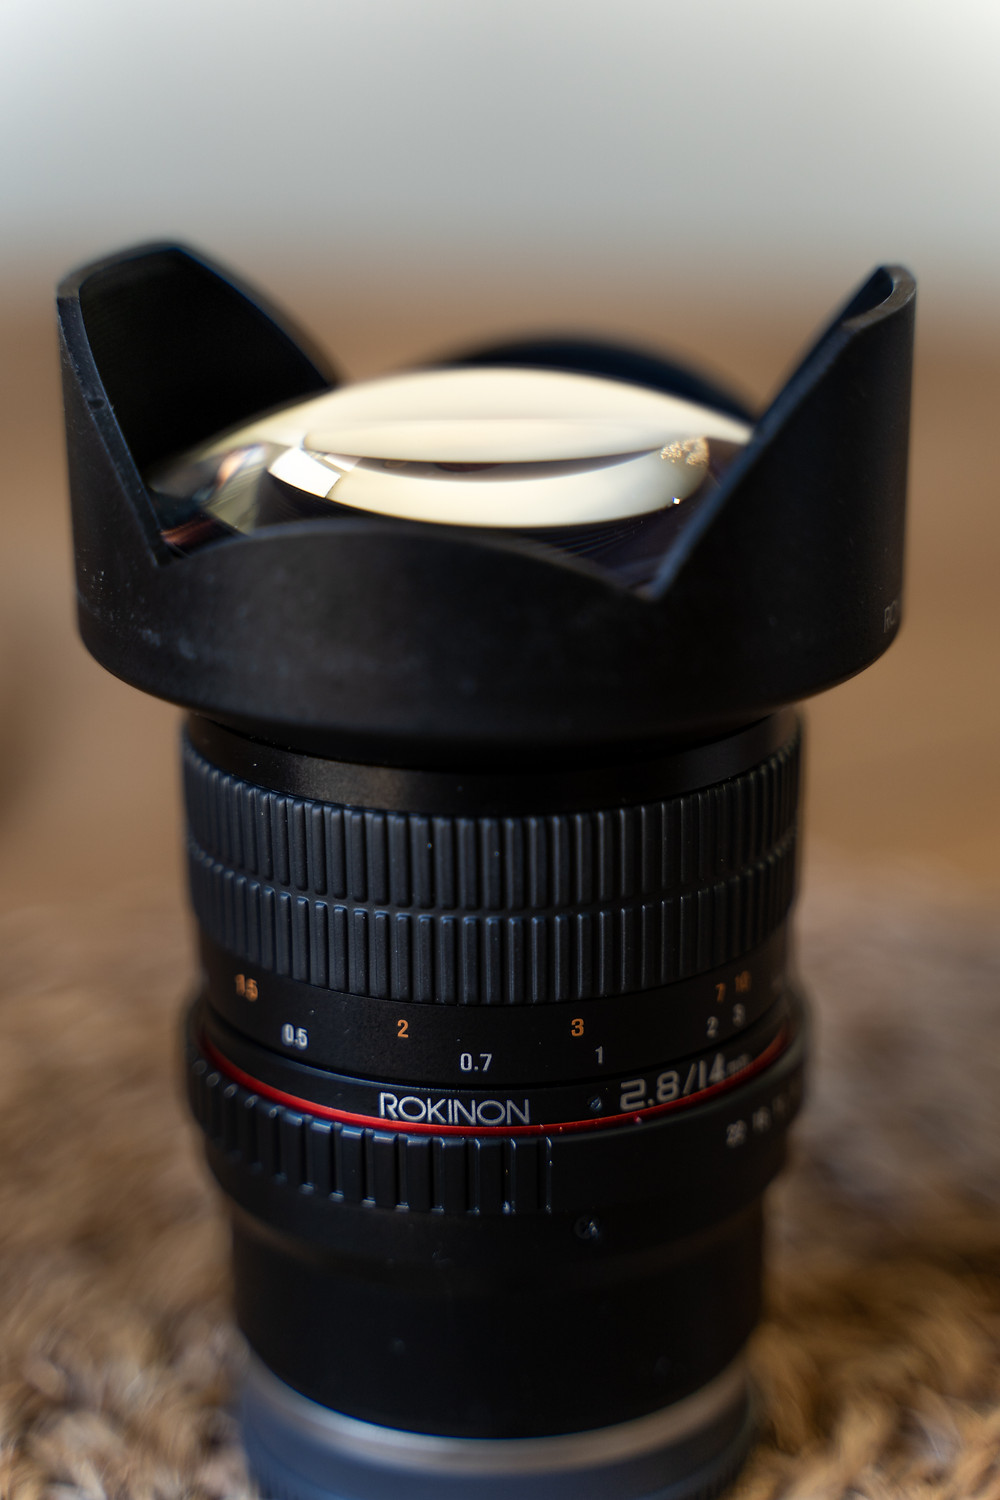 Rokinon 14mm F2.8 side view